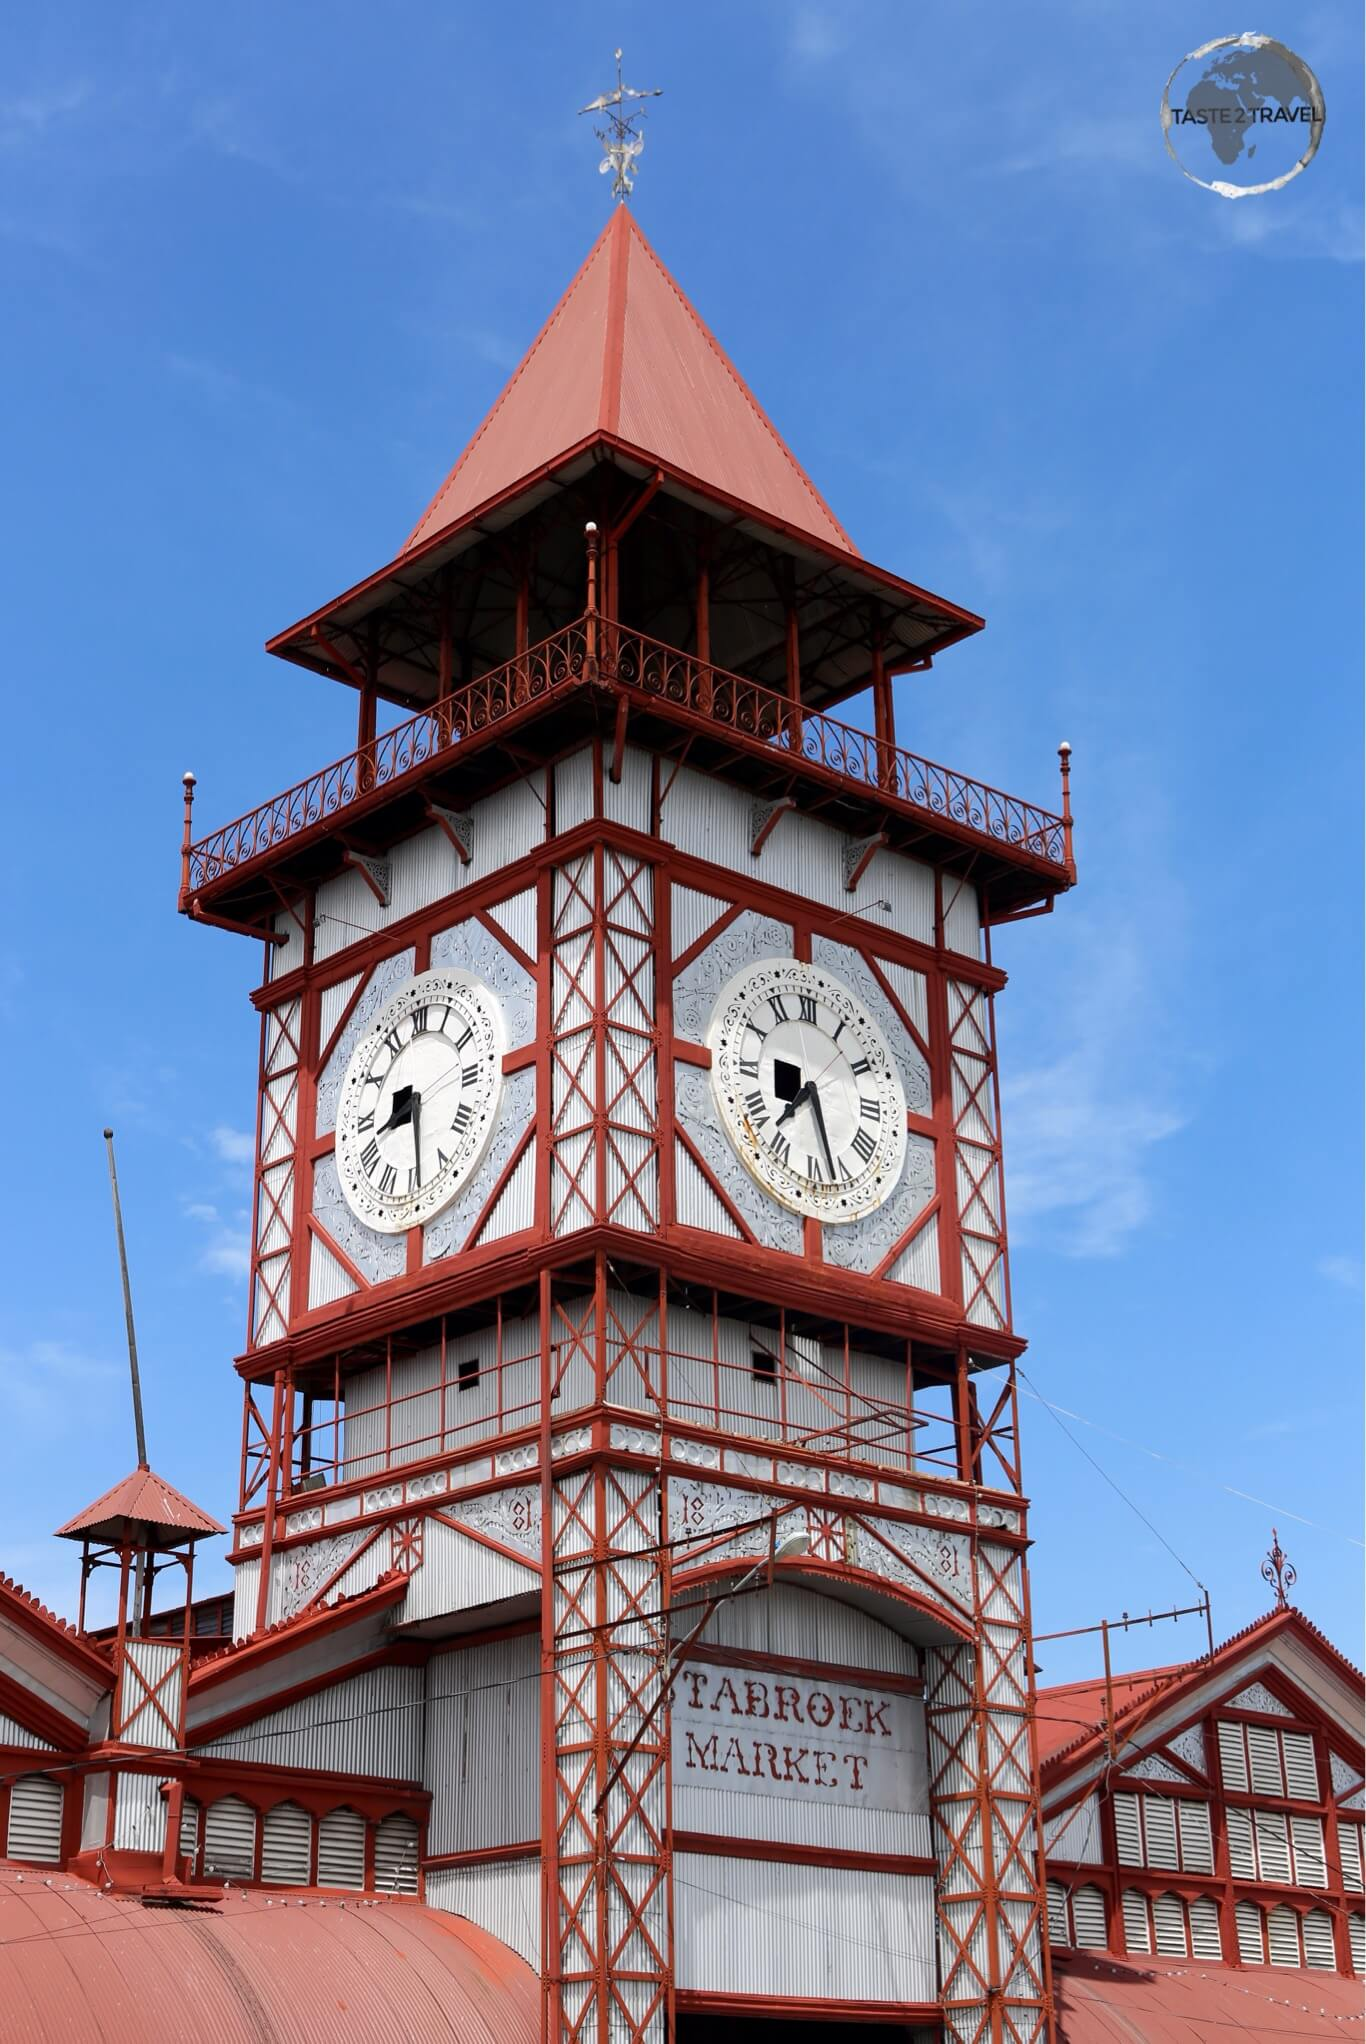 The iconic wrought-iron clock tower at Stabroek Market in Georgetown.